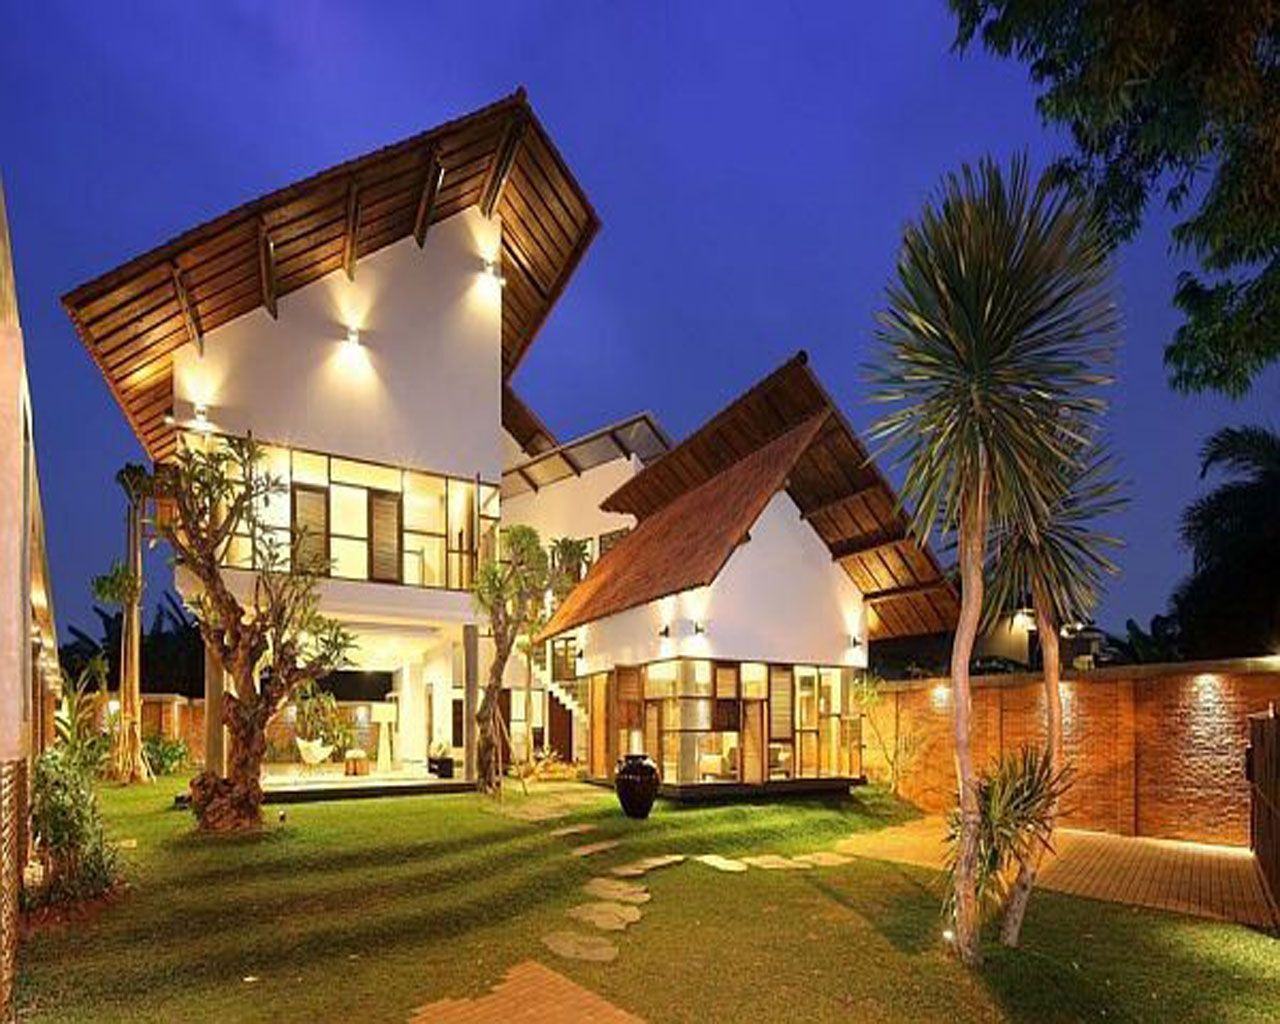 Fascinating Tropical Roof Design Representing Elegant Lighting - Tropical house design concept